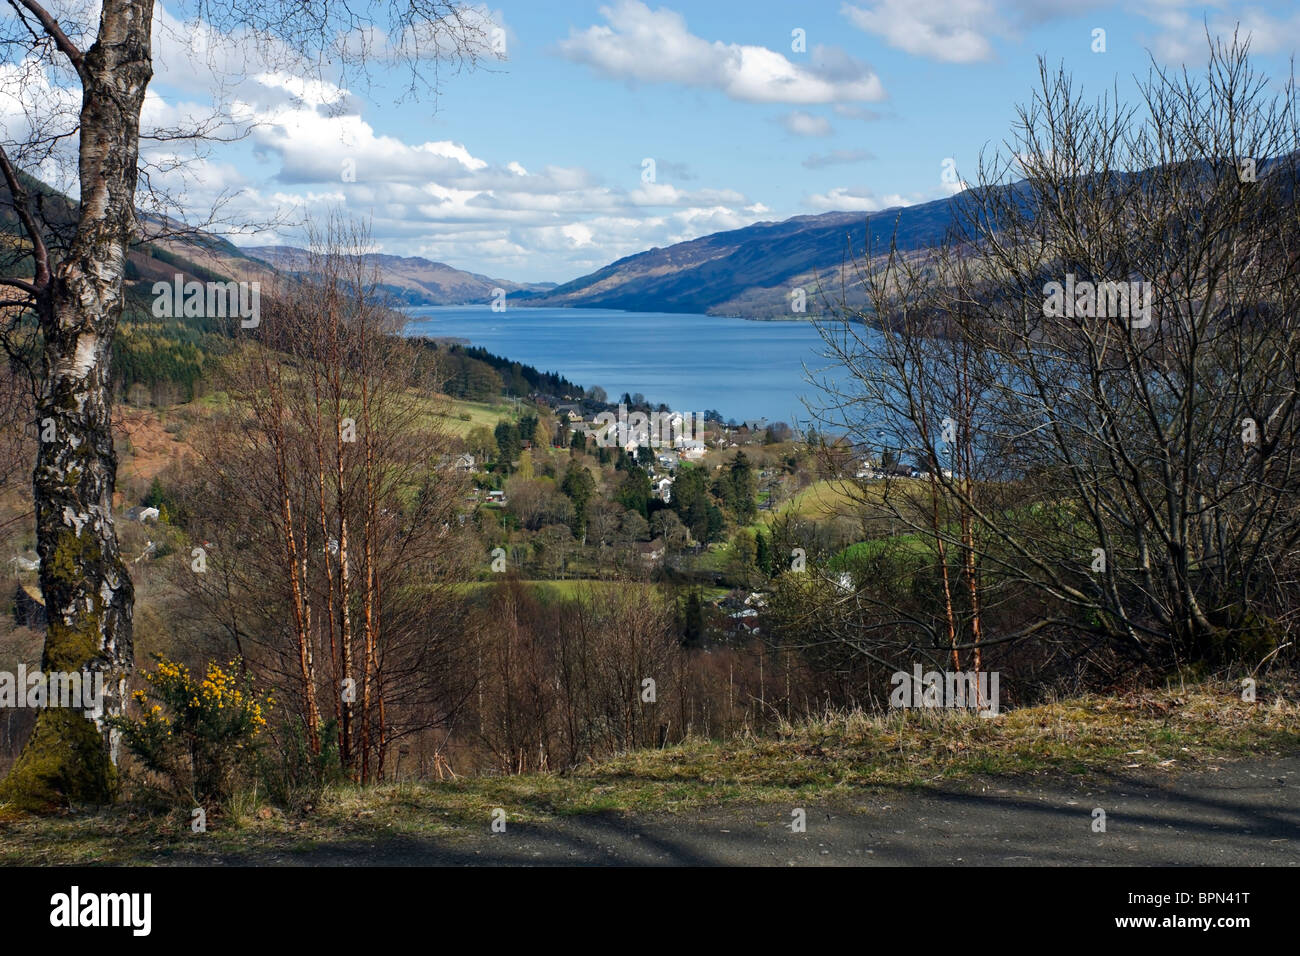 View of Loch Earn from Glen Ogle trail Stirlingshire Scotland - Stock Image